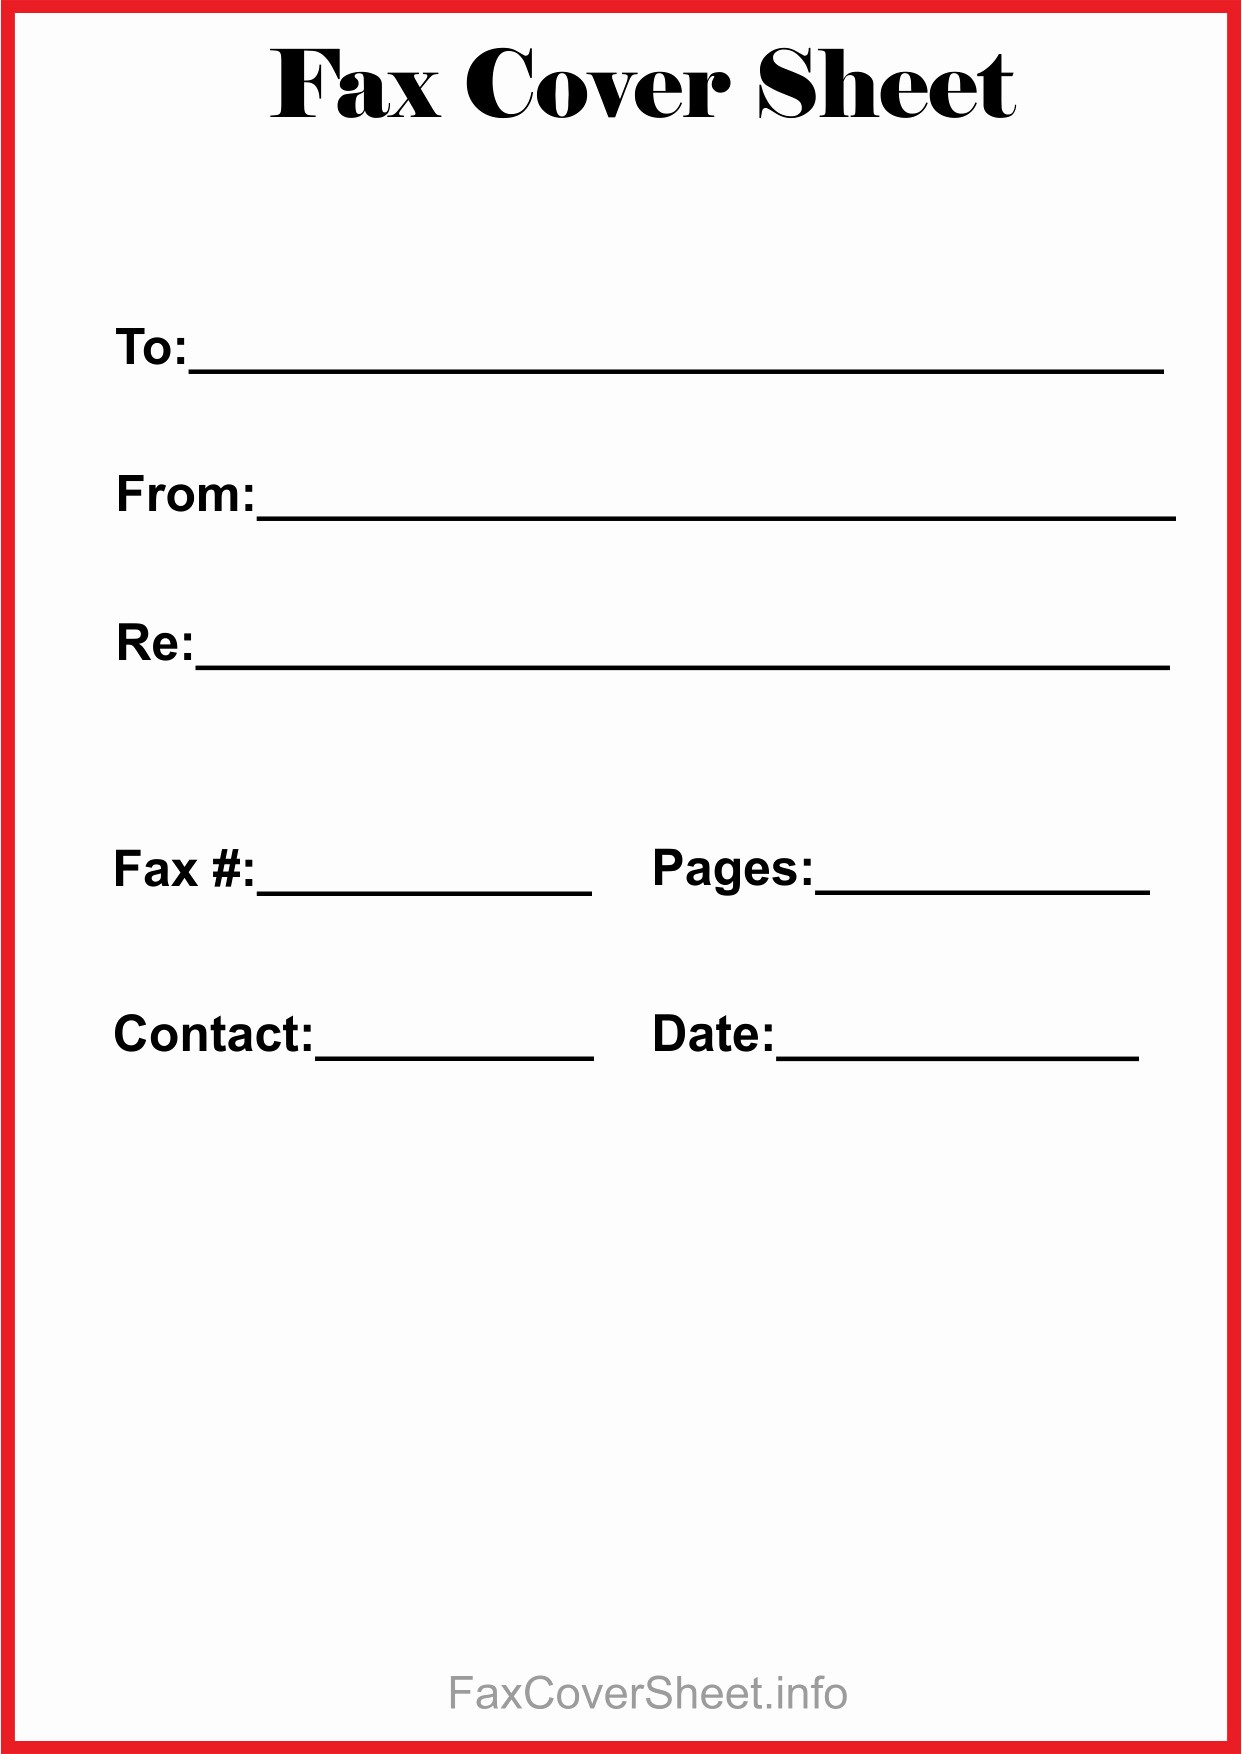 Free Fax Cover Sheets Templates Awesome Free Fax Cover Sheet Template Download